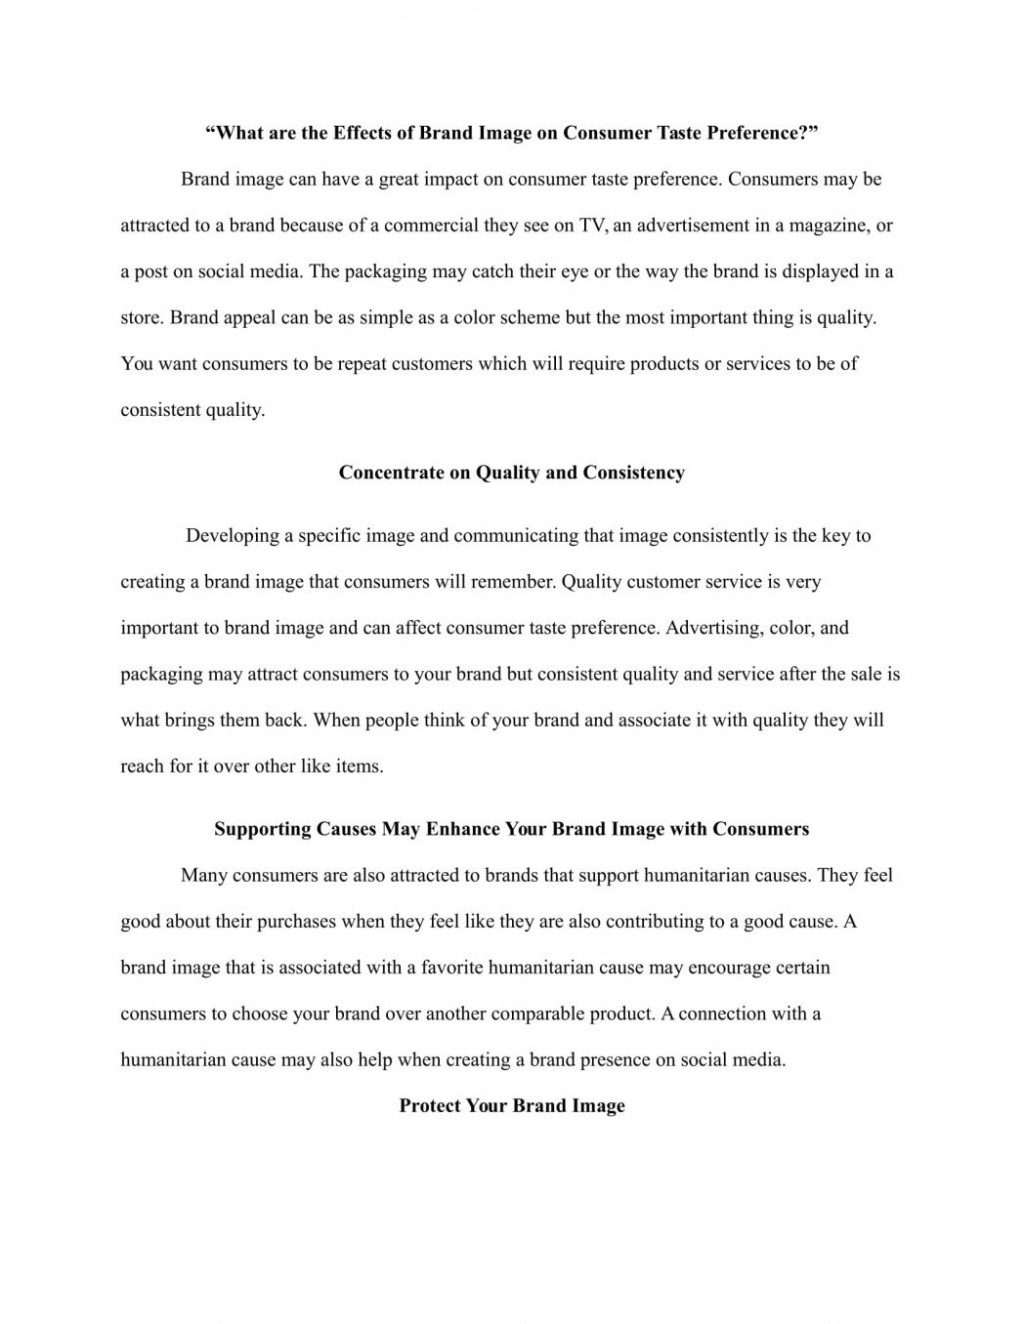 006 Essay File Expository Sample Jpg Volunteer Service Exploratory Topicss Sam Introduction Free Research Thesis 1048x1356 Awful Topics About Medicine Great Large